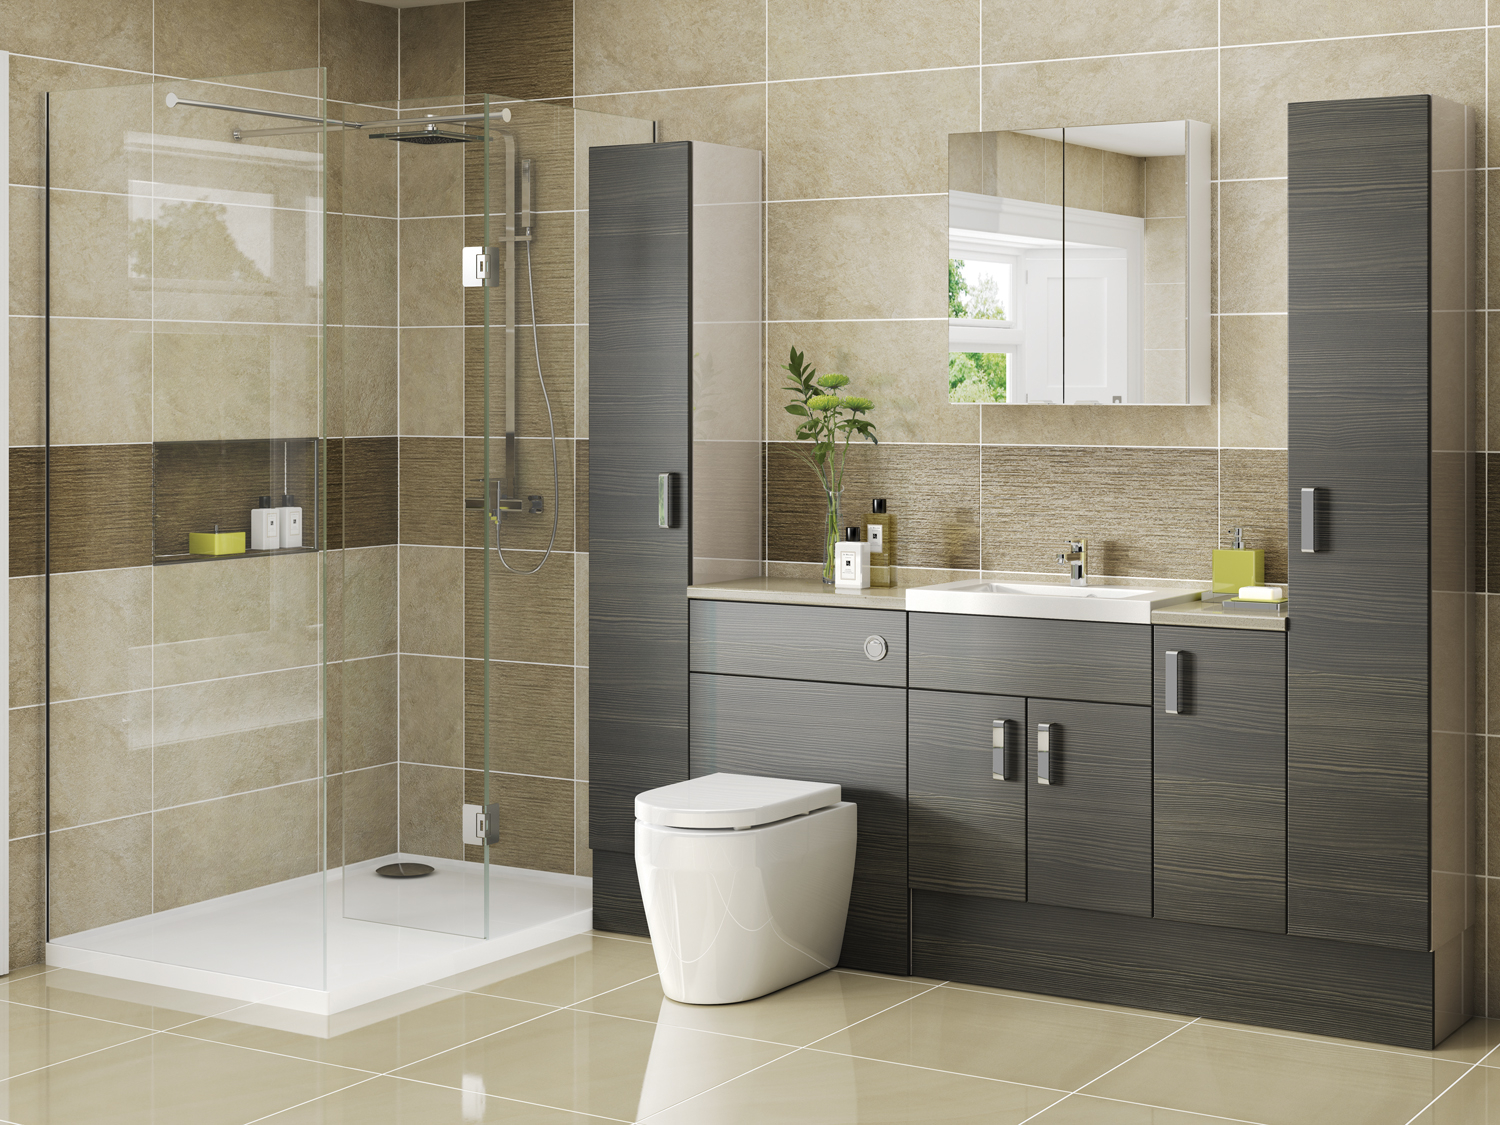 Fitted Eco Bathrooms Porcelanosa Tiles Porcelanosa Bathrooms with size 1500 X 1125